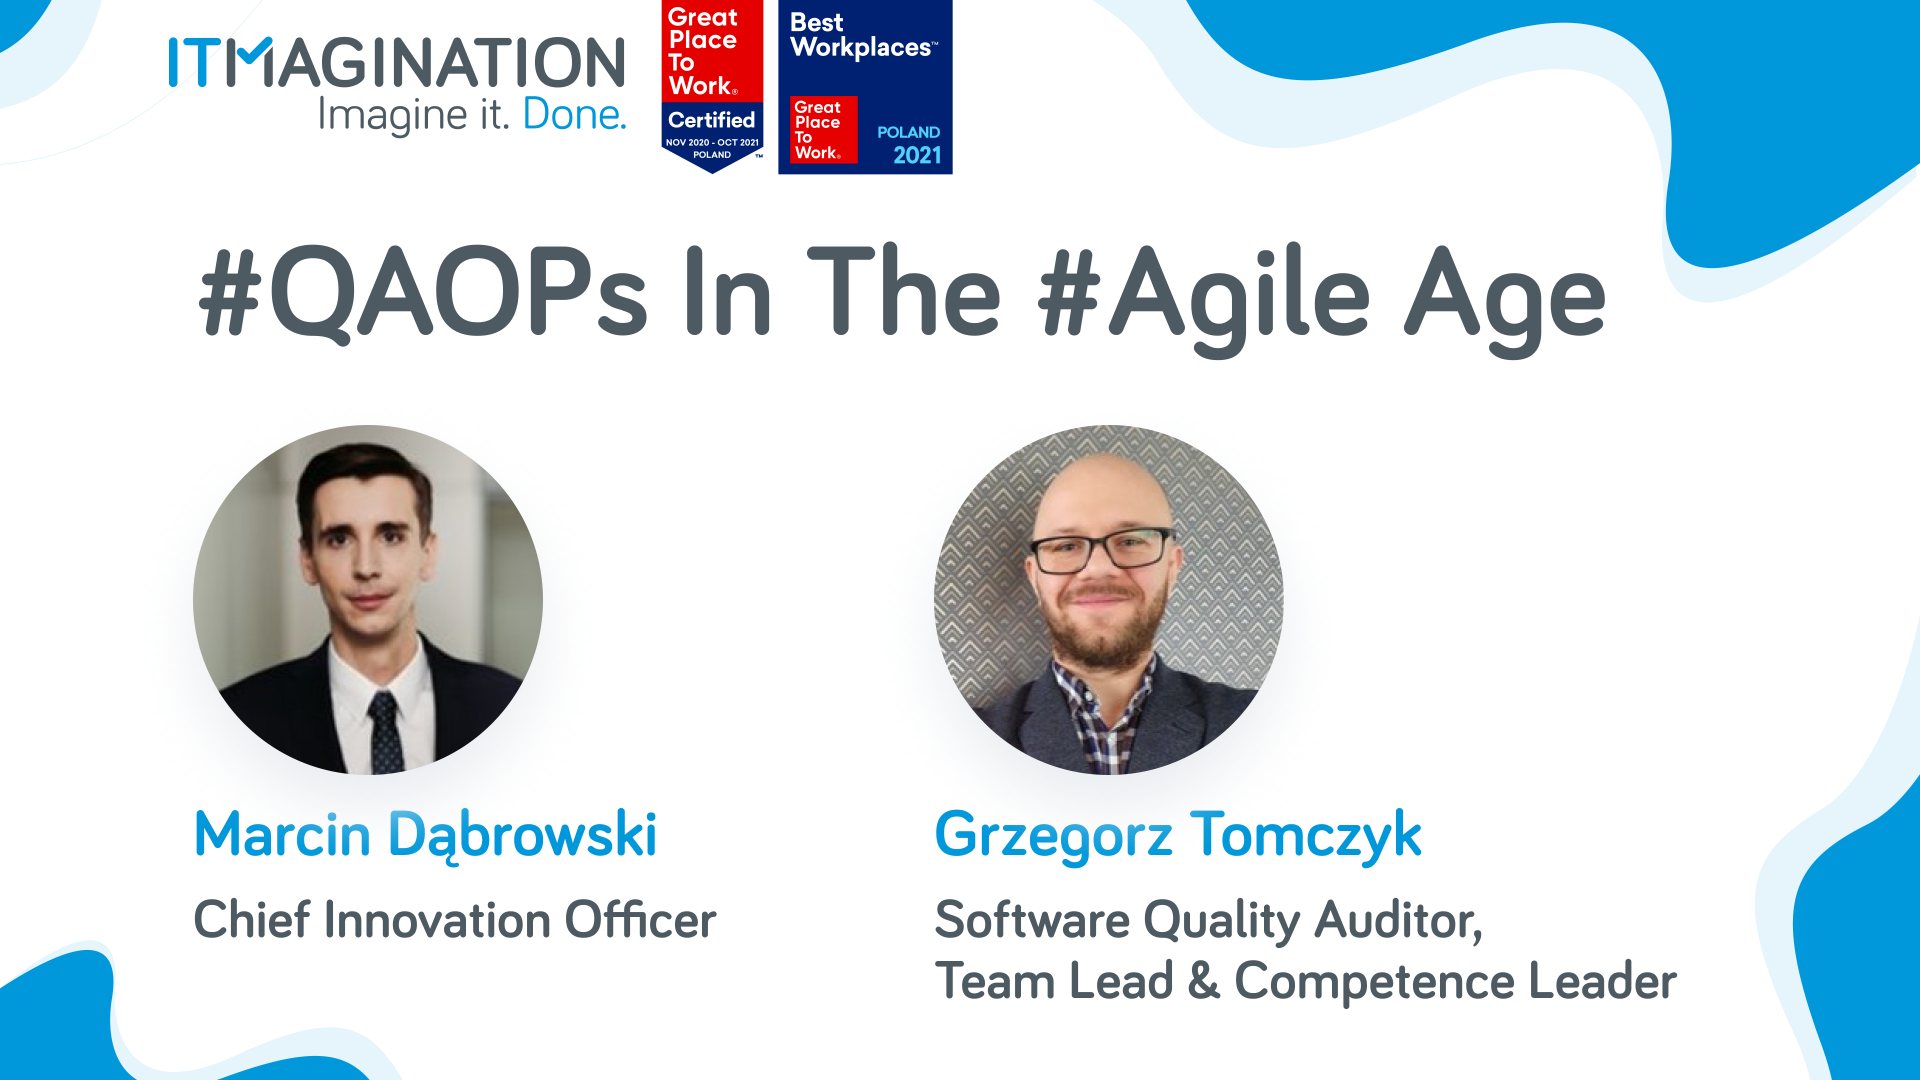 QAOps In The Agile Age Using Automated & Manual Testing